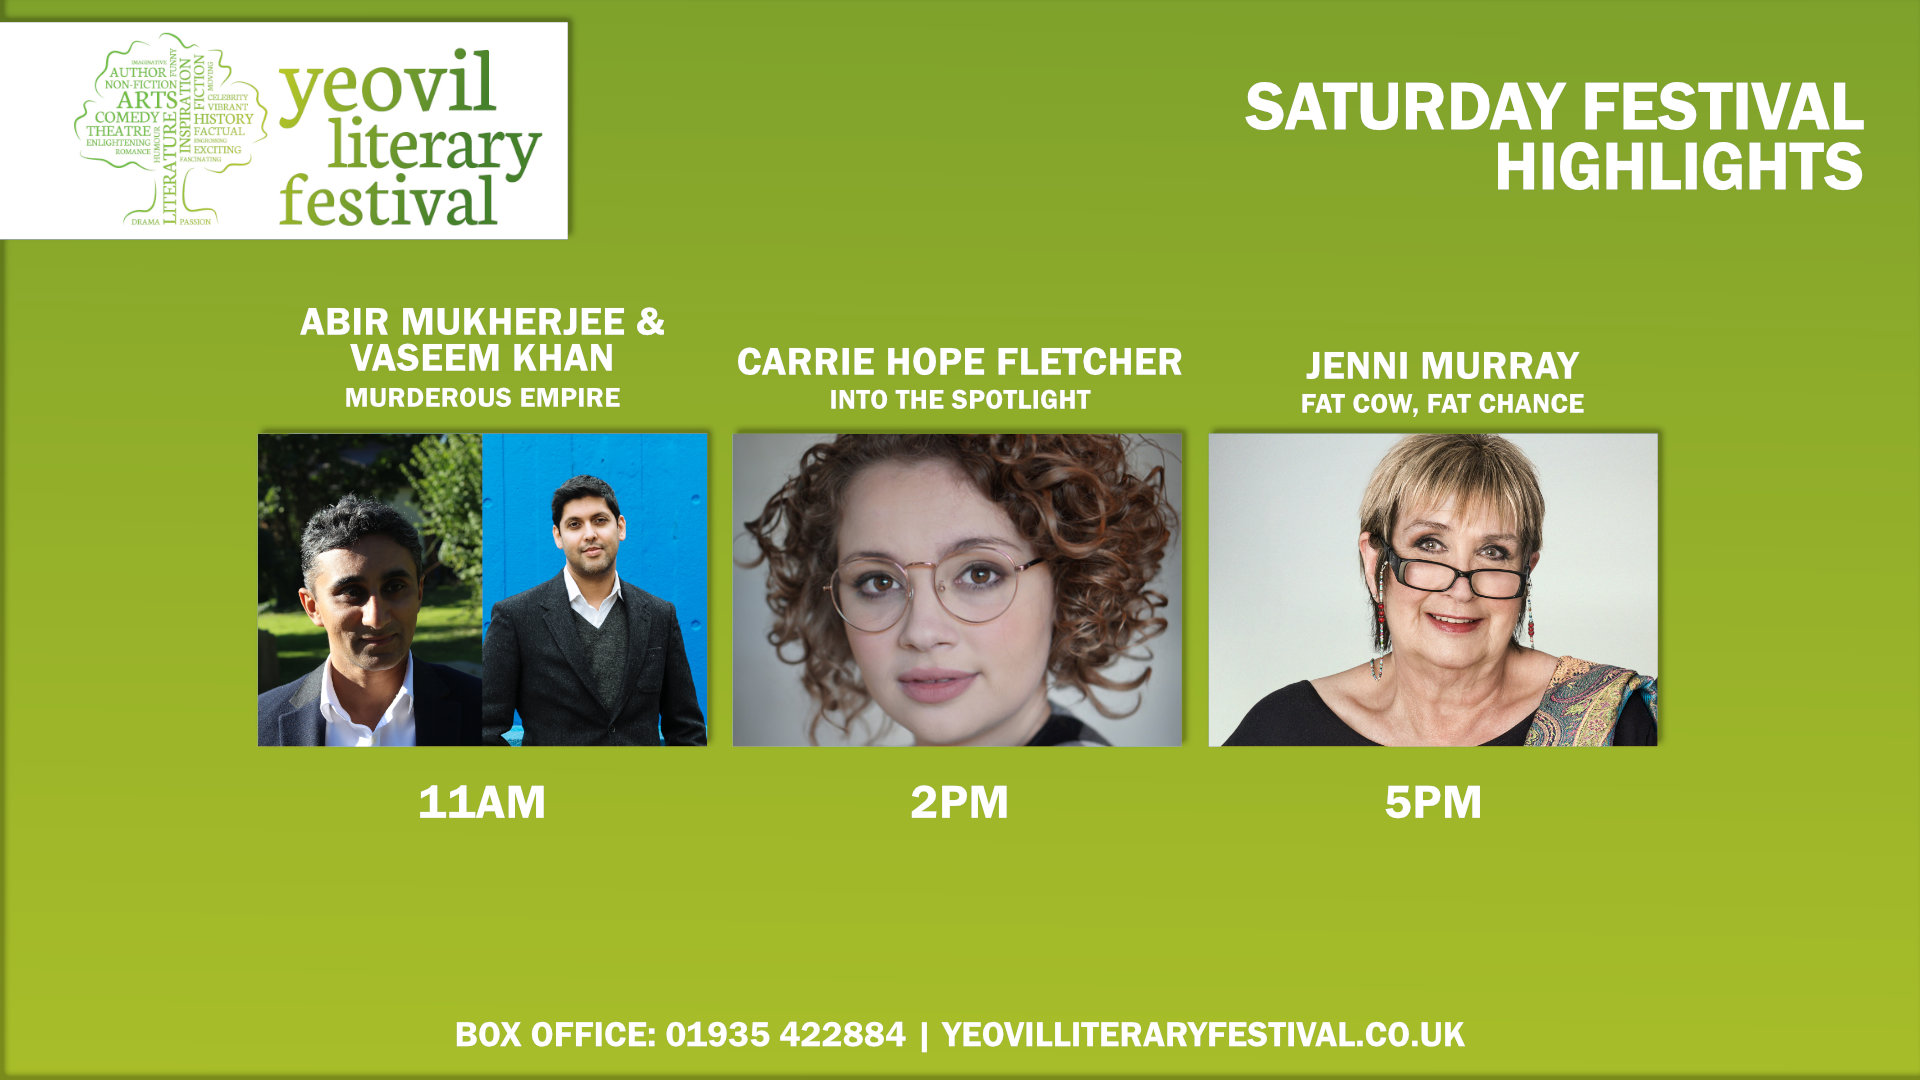 Yeovil Literary Festival - Saturday Festival Highlights